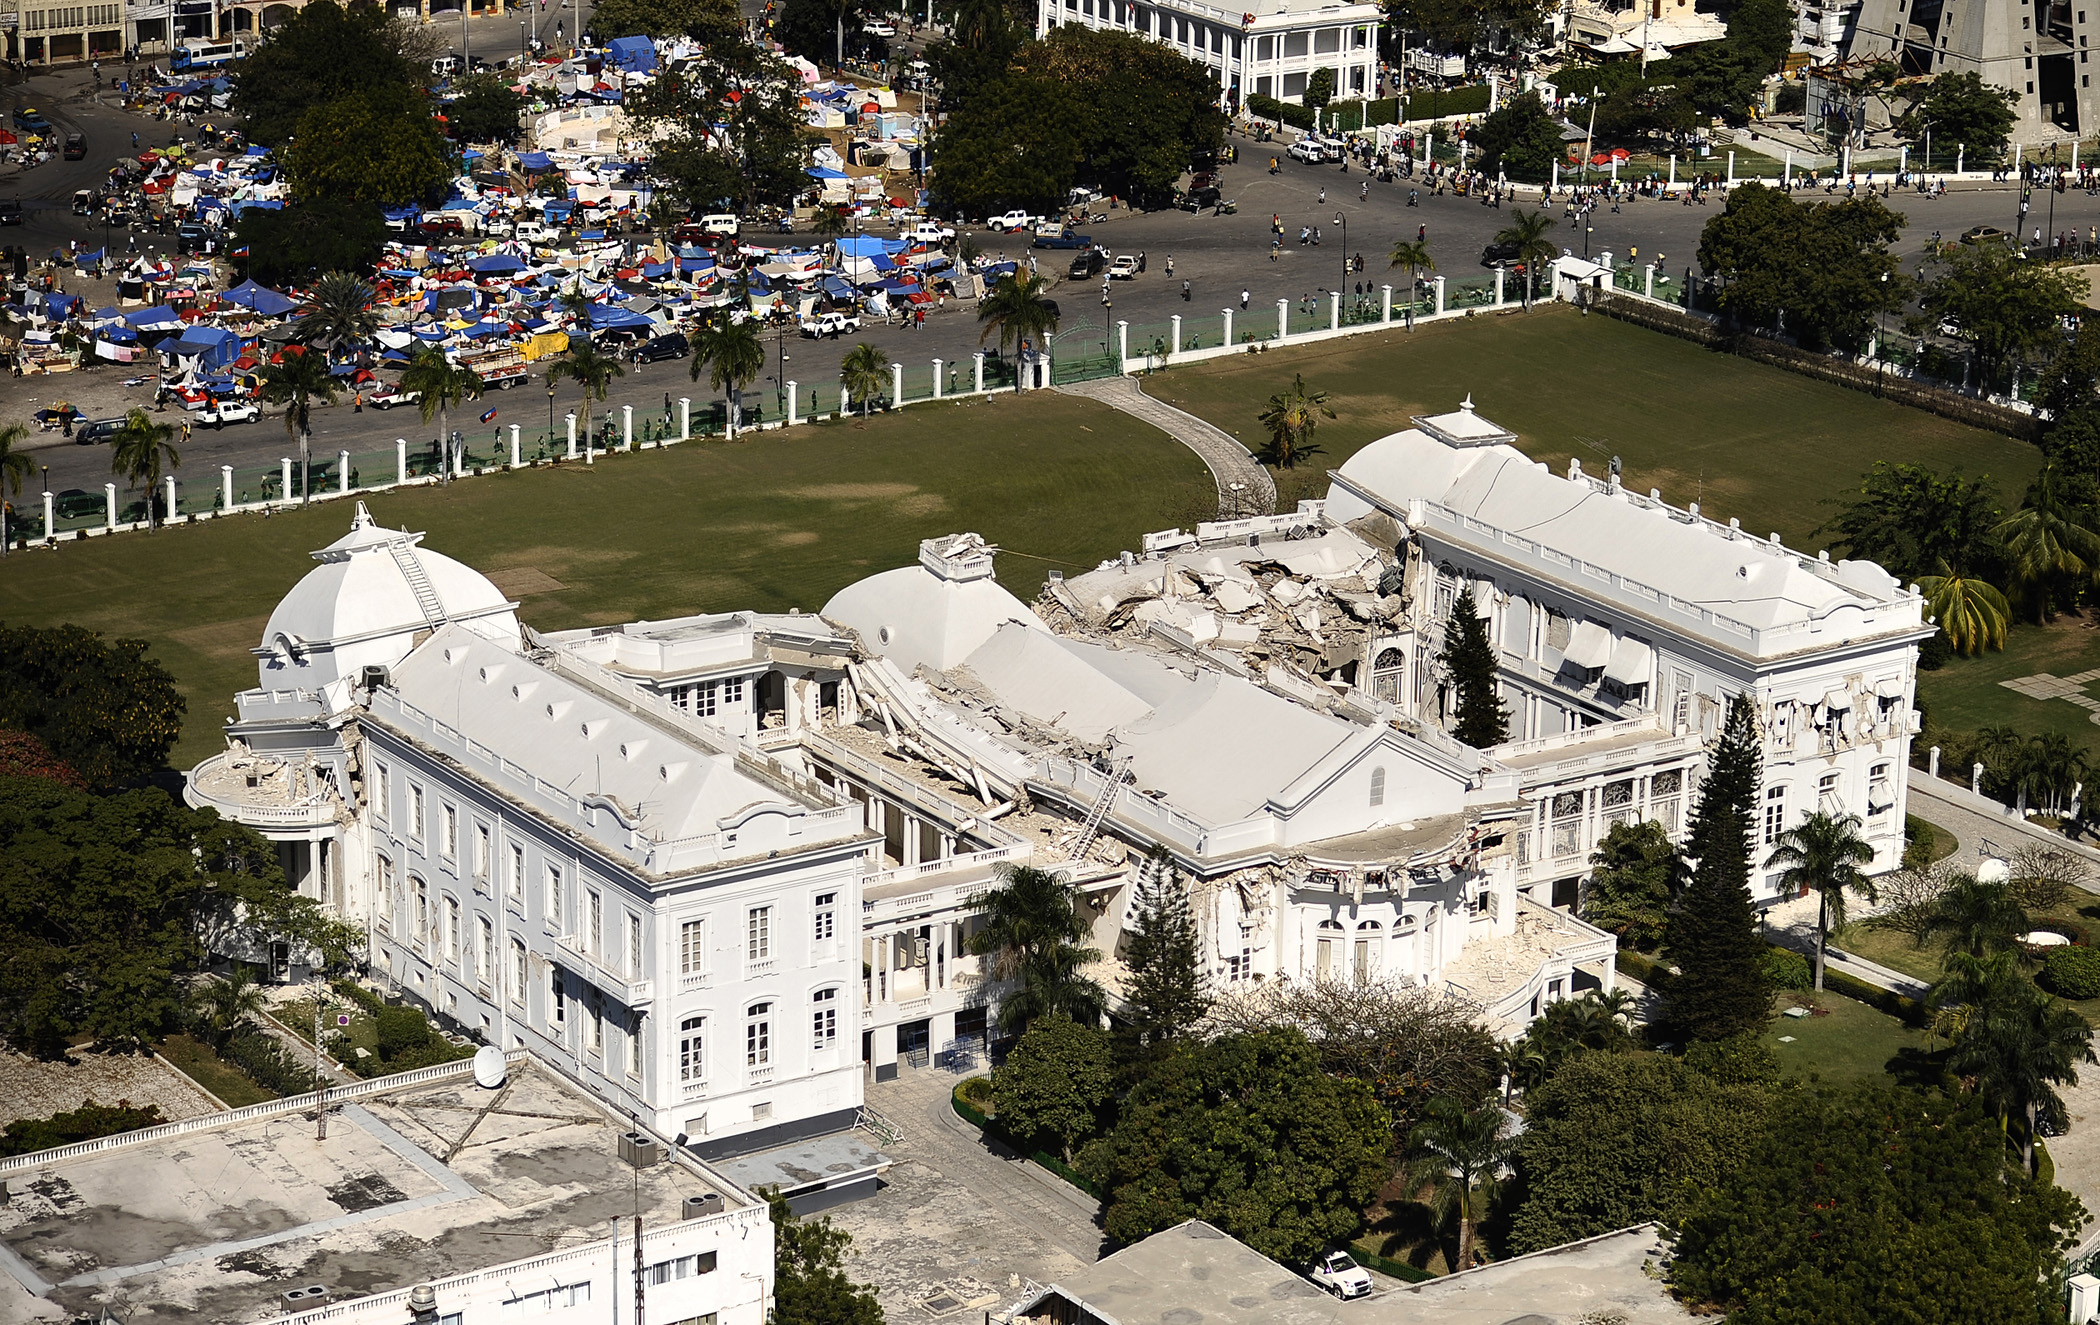 US_Navy_100128-N-5345W-277_The_Presidential_Palace_sits_in_ruins_while_hundreds_of_displaced_Haitians_take_shelter_in_one_of_the_many_tent_cities_just_outside_the_palaces_main_gate